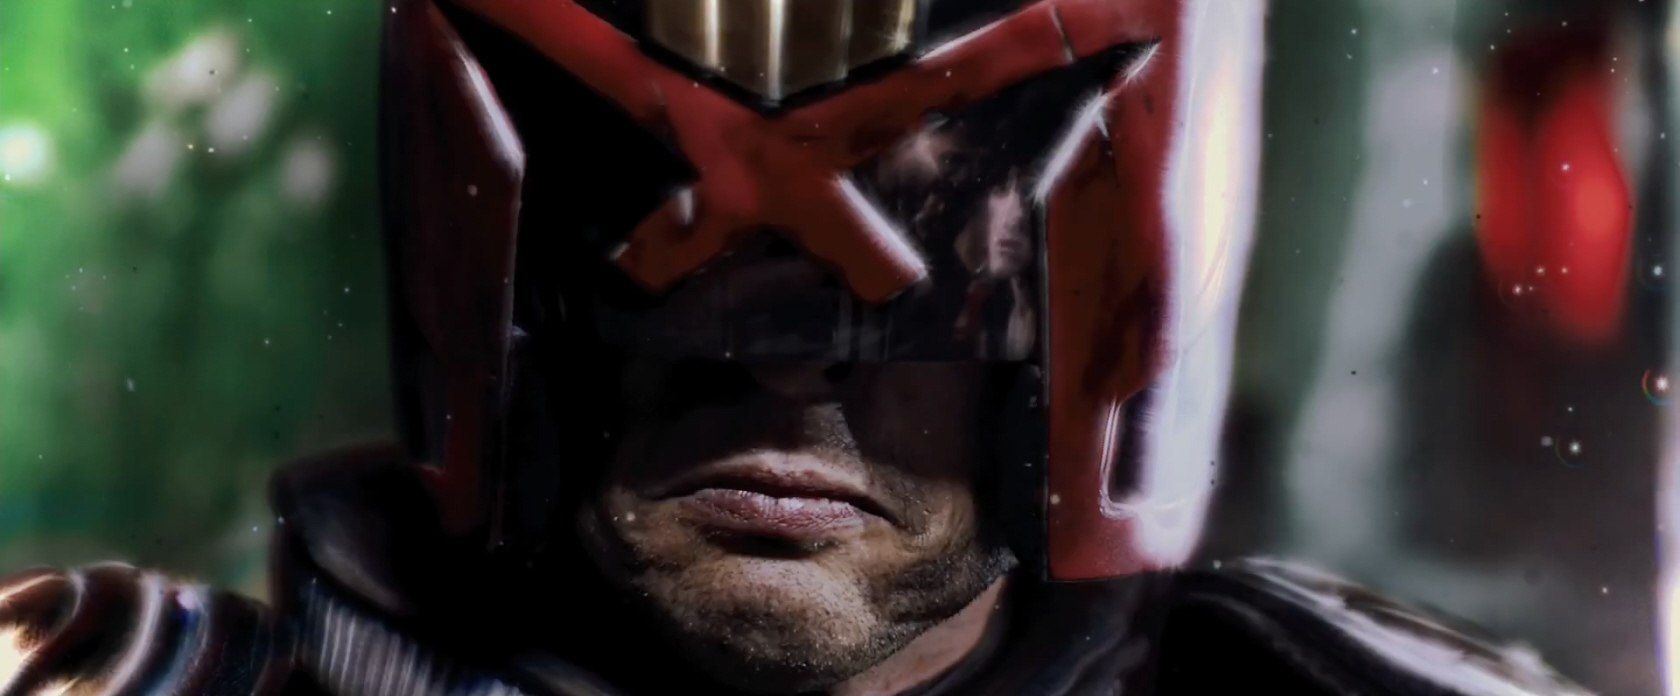 who plays judge dredd in the new movie